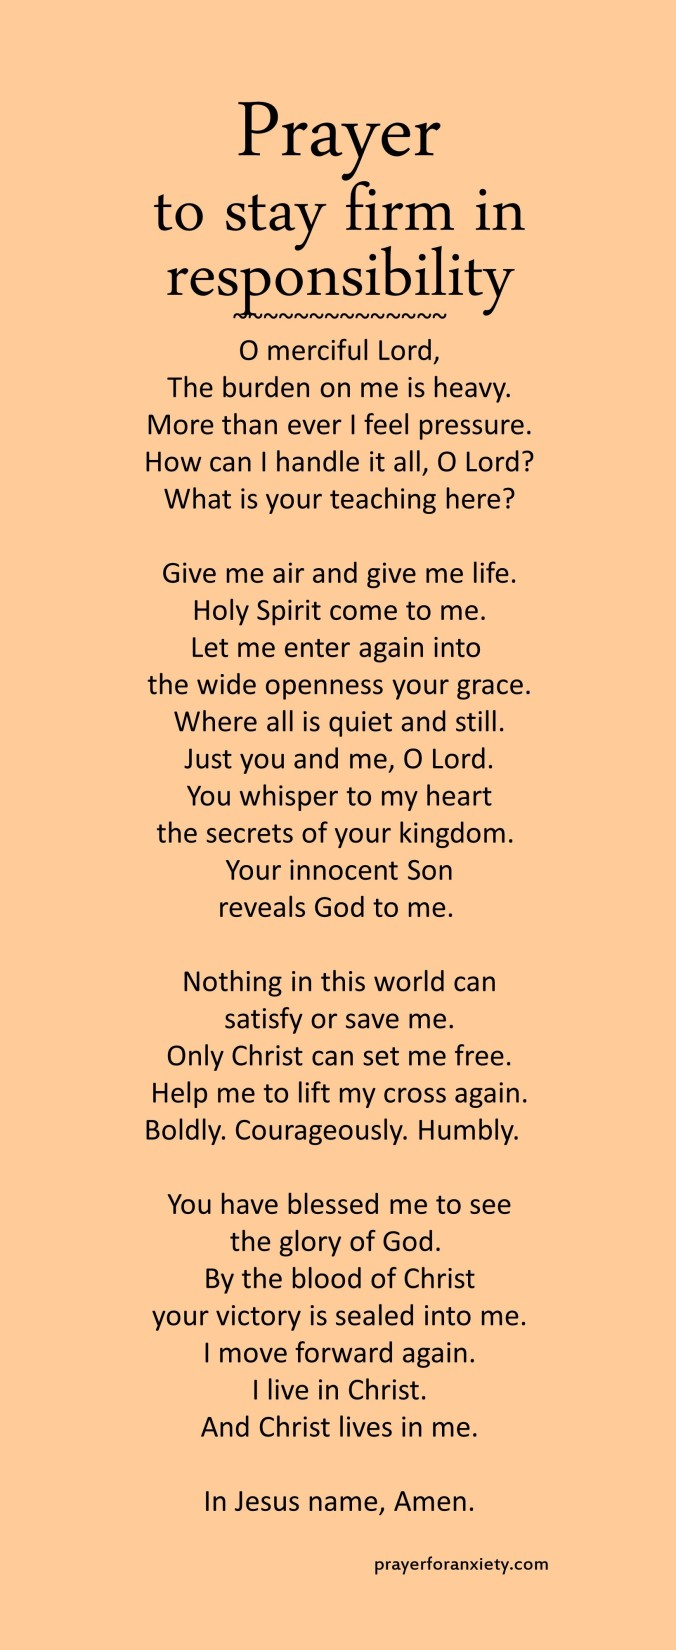 Prayer to stay firm in responsibility